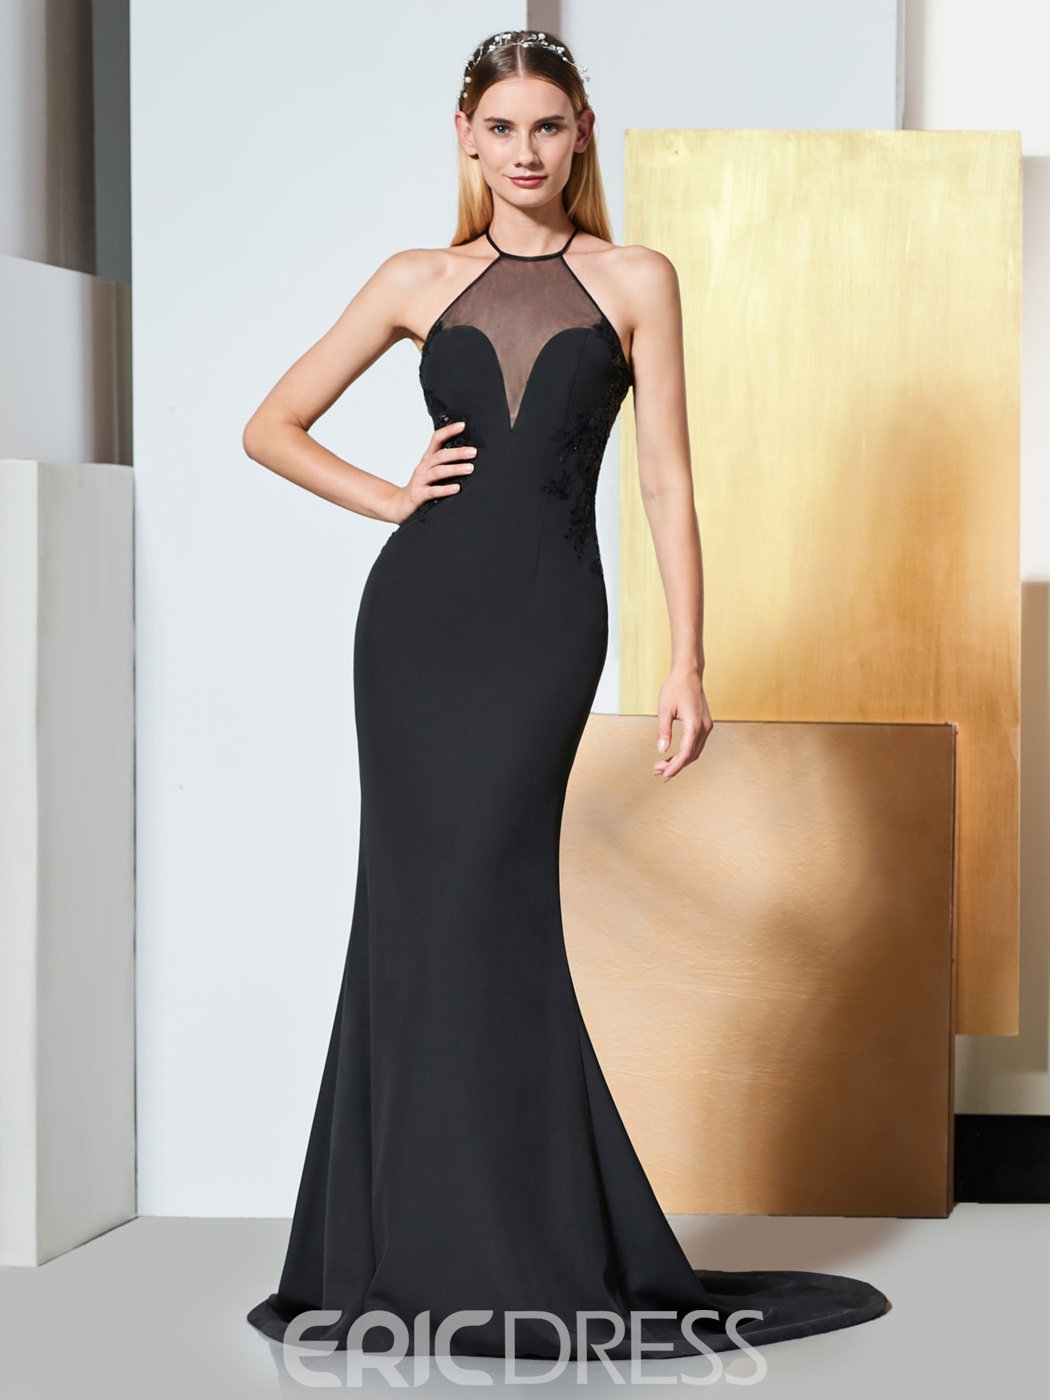 Ericdress Halter Sequin Applique Black Mermaid Evening Dress